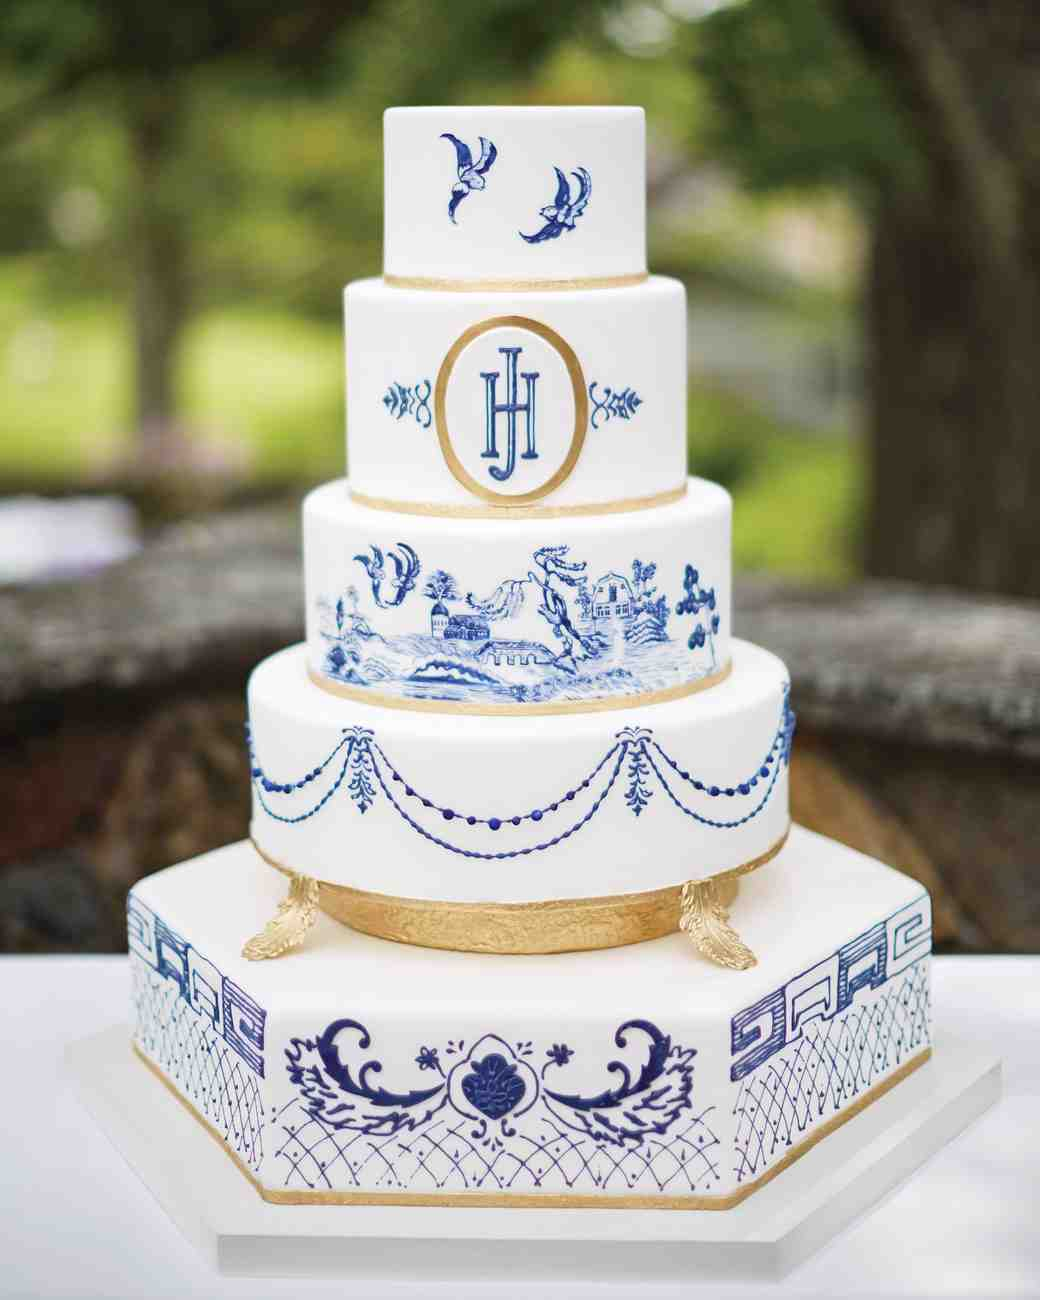 Martha Stewart Weddings Ana Parzych Custom Wedding Cakes Featured Cake Ceremony Image